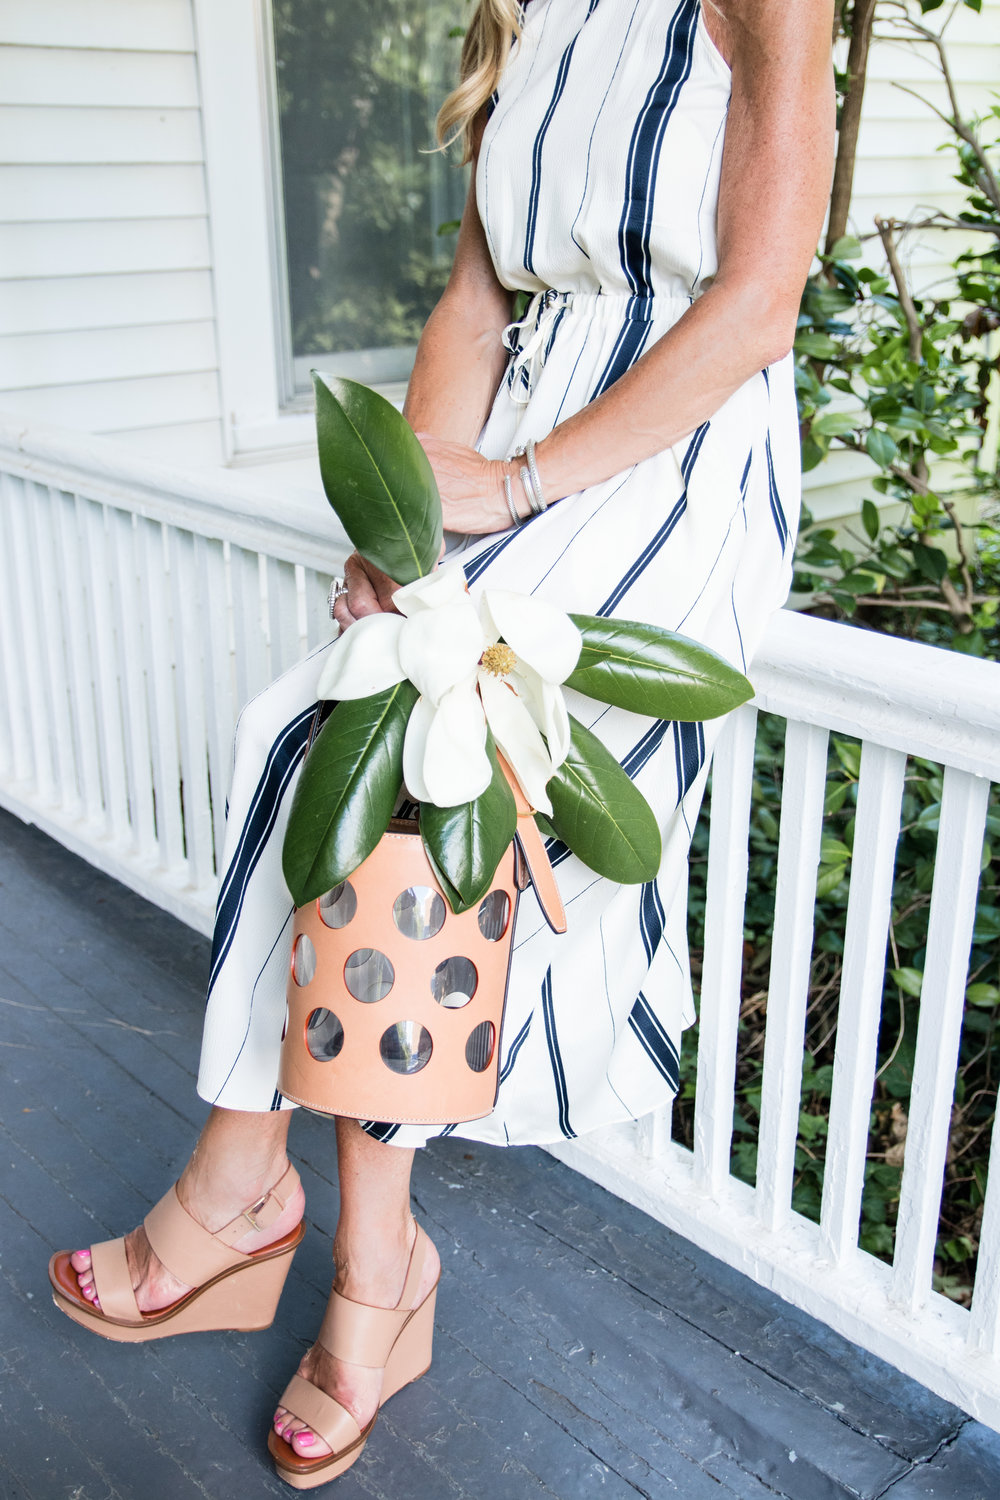 Loft dress with Tory Burch bag and shoes